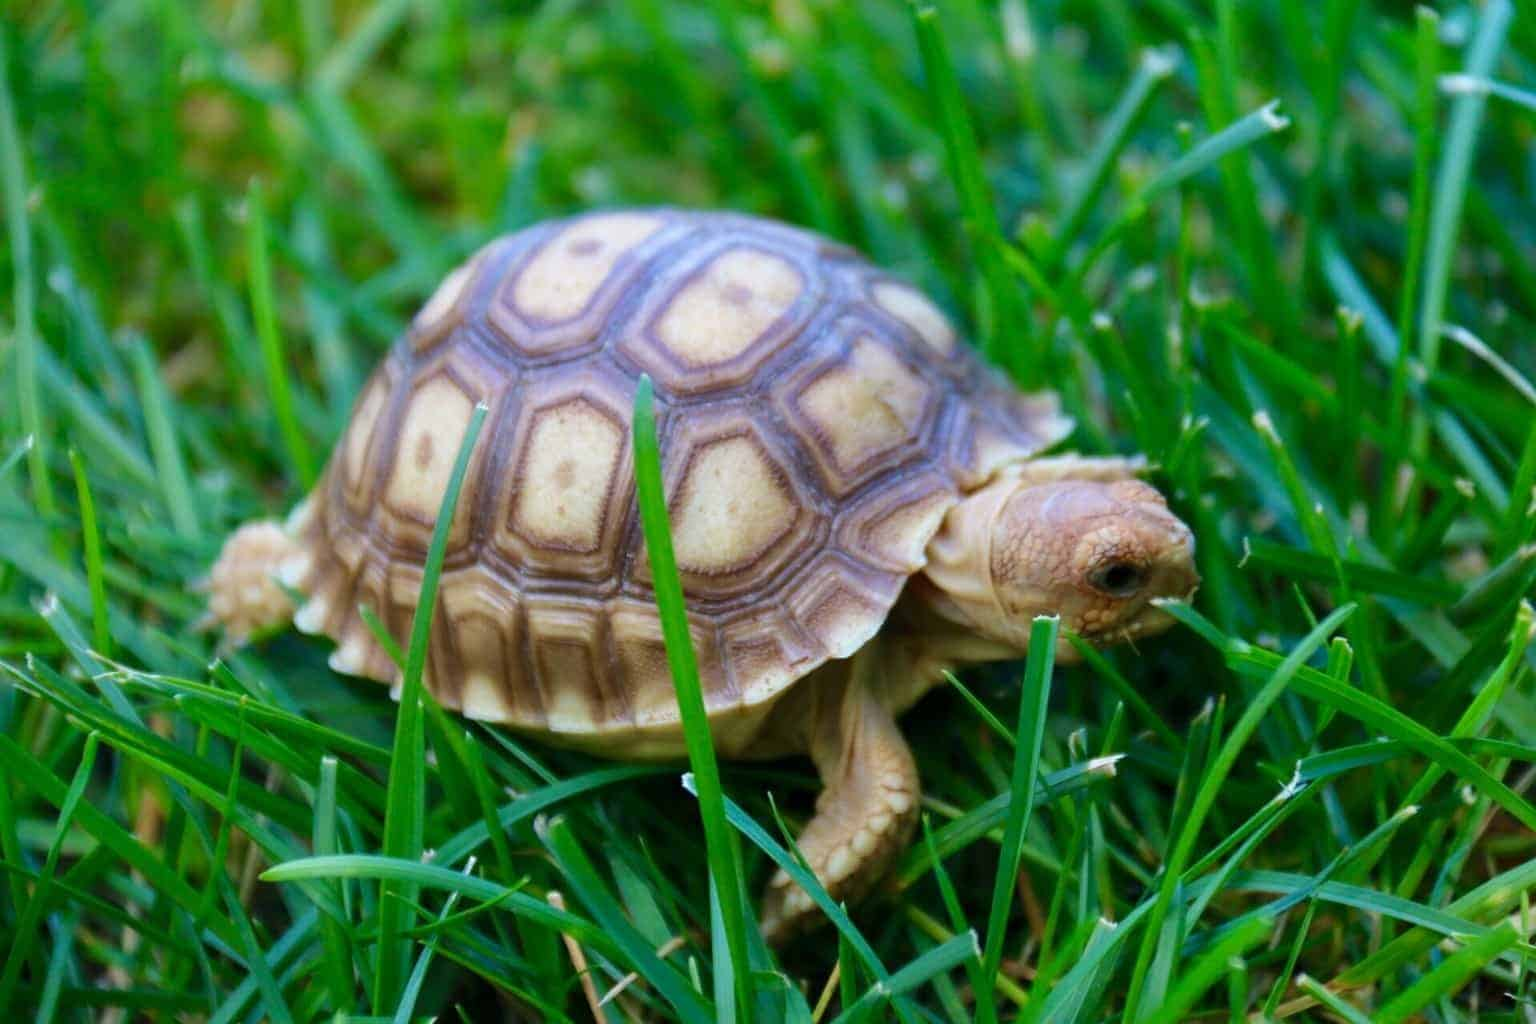 Sulcata tortoise for sale online | Overnight Shipping from our Tortoise Farm